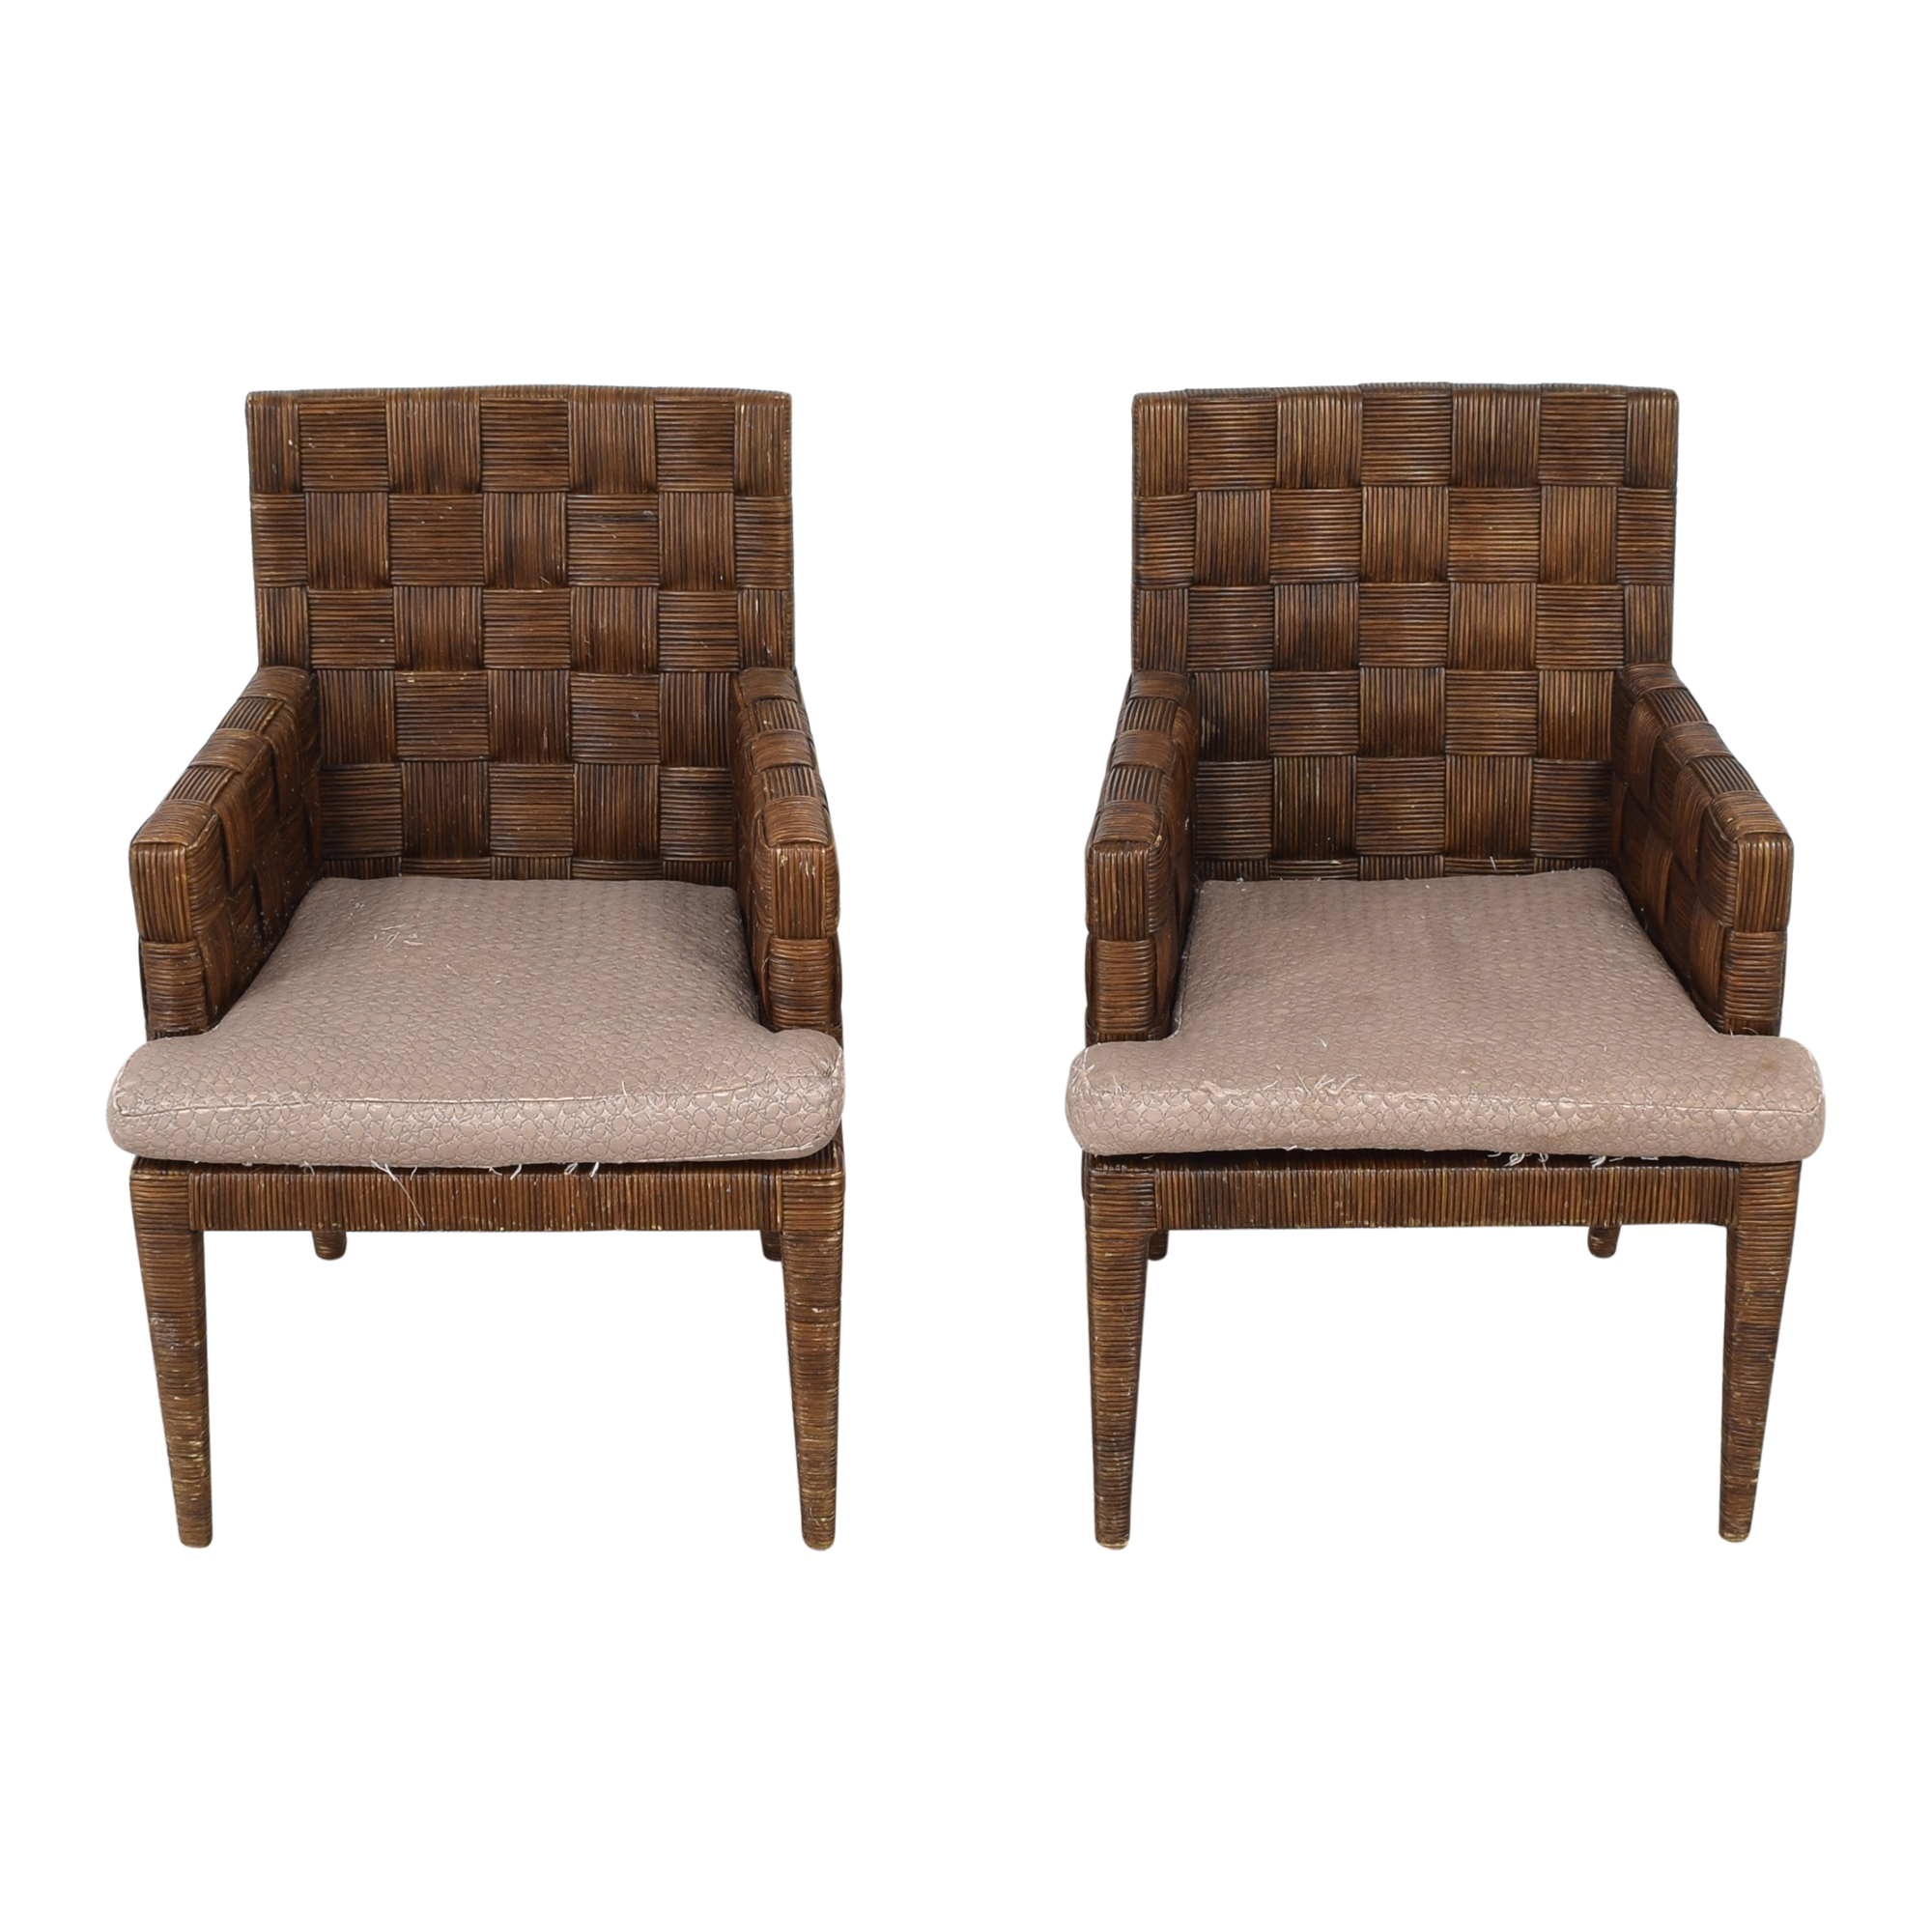 Donghia Donghia by John Hutton Block Island Dining Armchairs used